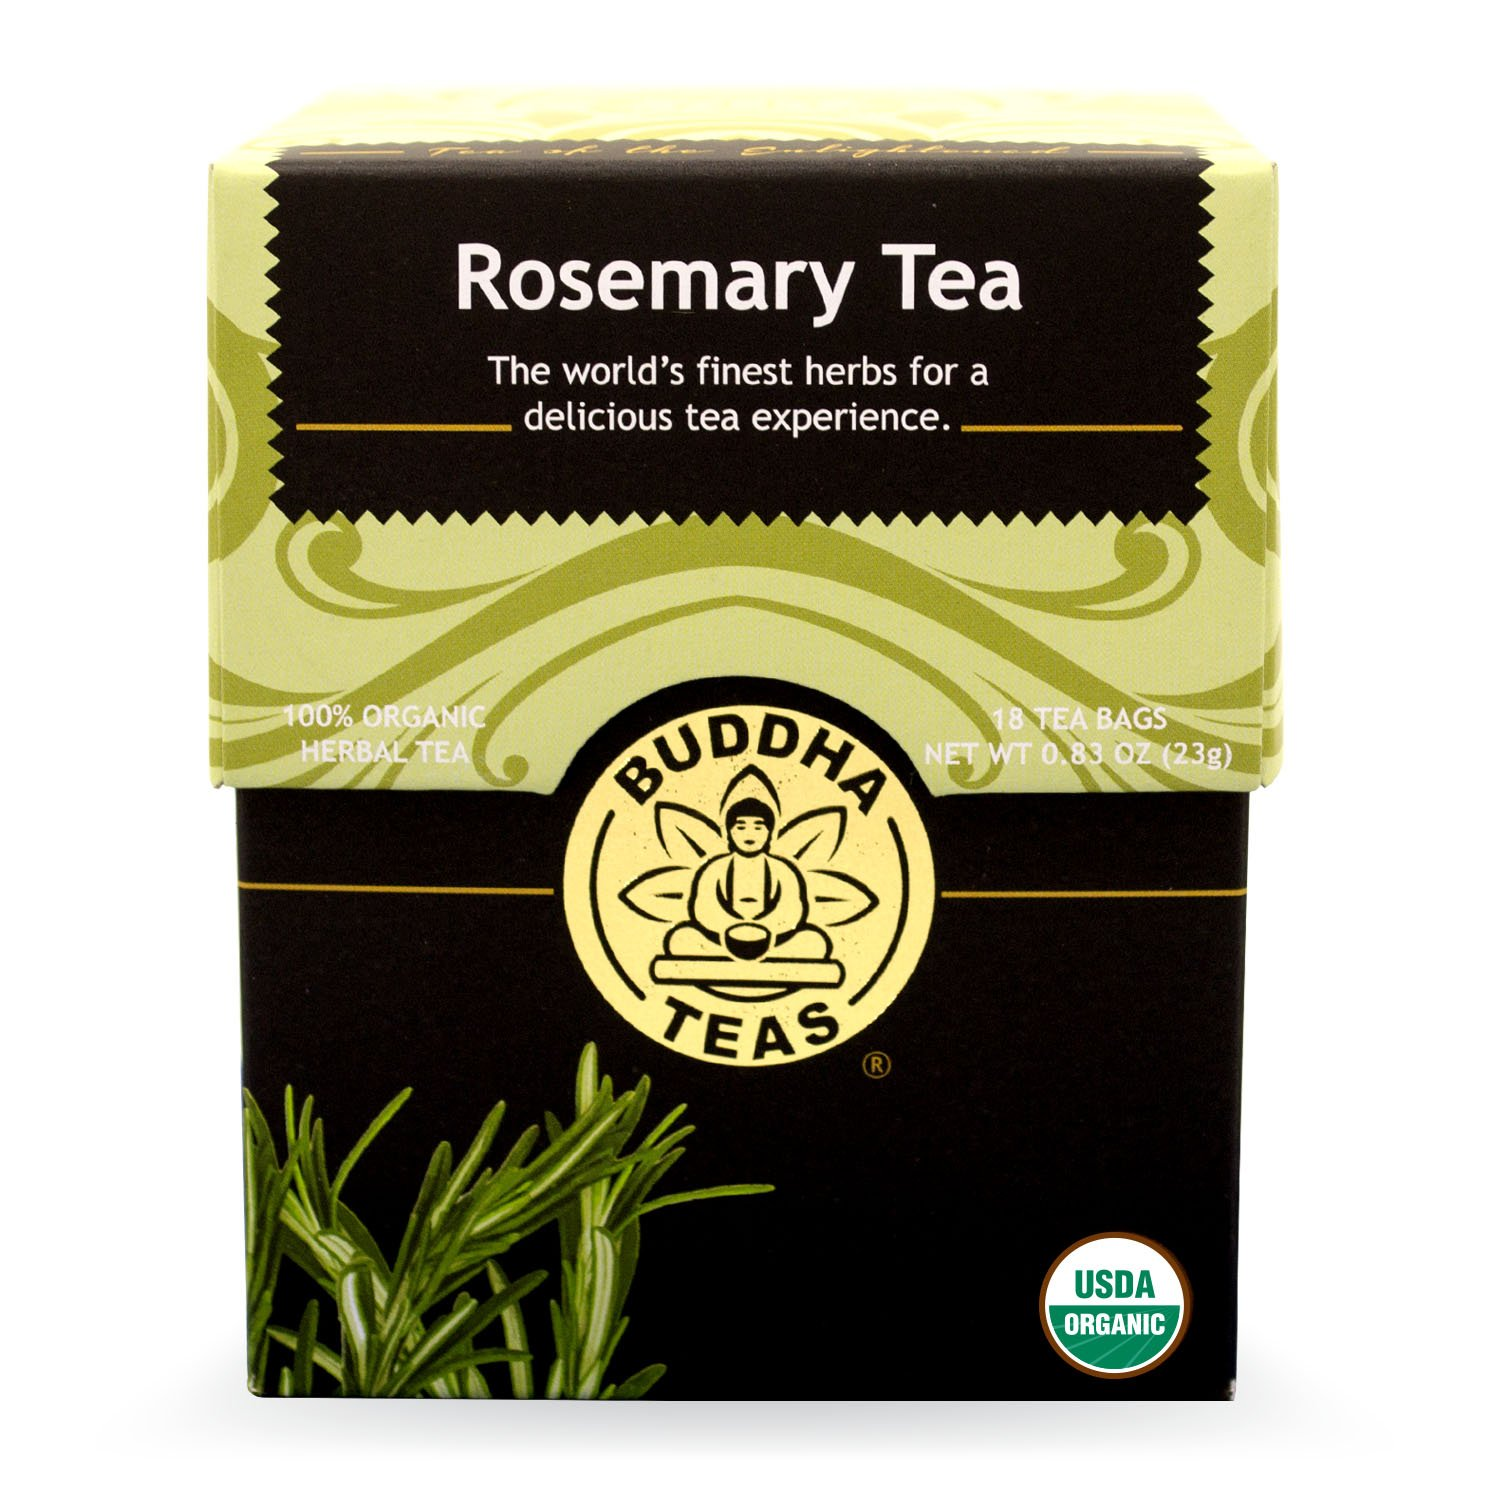 Buddha Teas Rosemary Tea, 18 Count (Pack of 6)